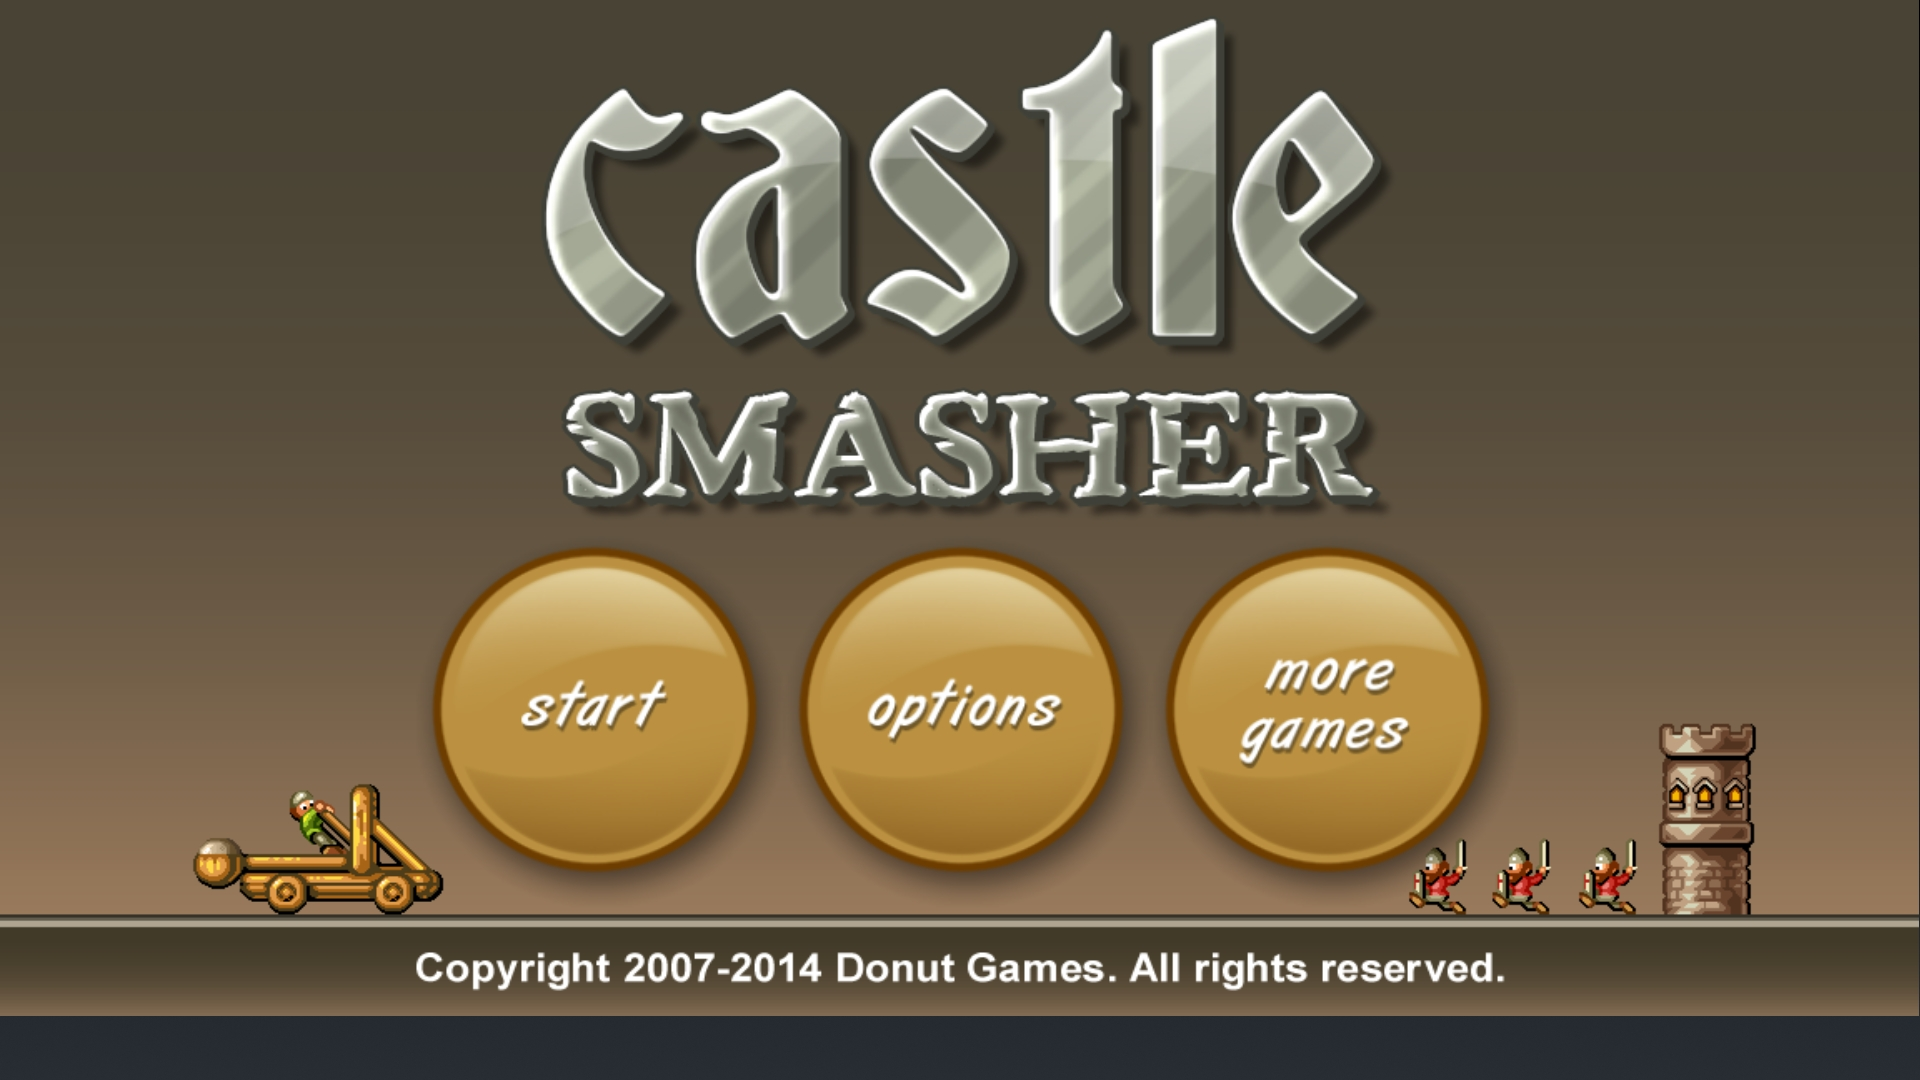 Bamse: Castle Smasher: Challenges: 01 The Wall (Android) 10 points on 2019-08-21 17:05:18